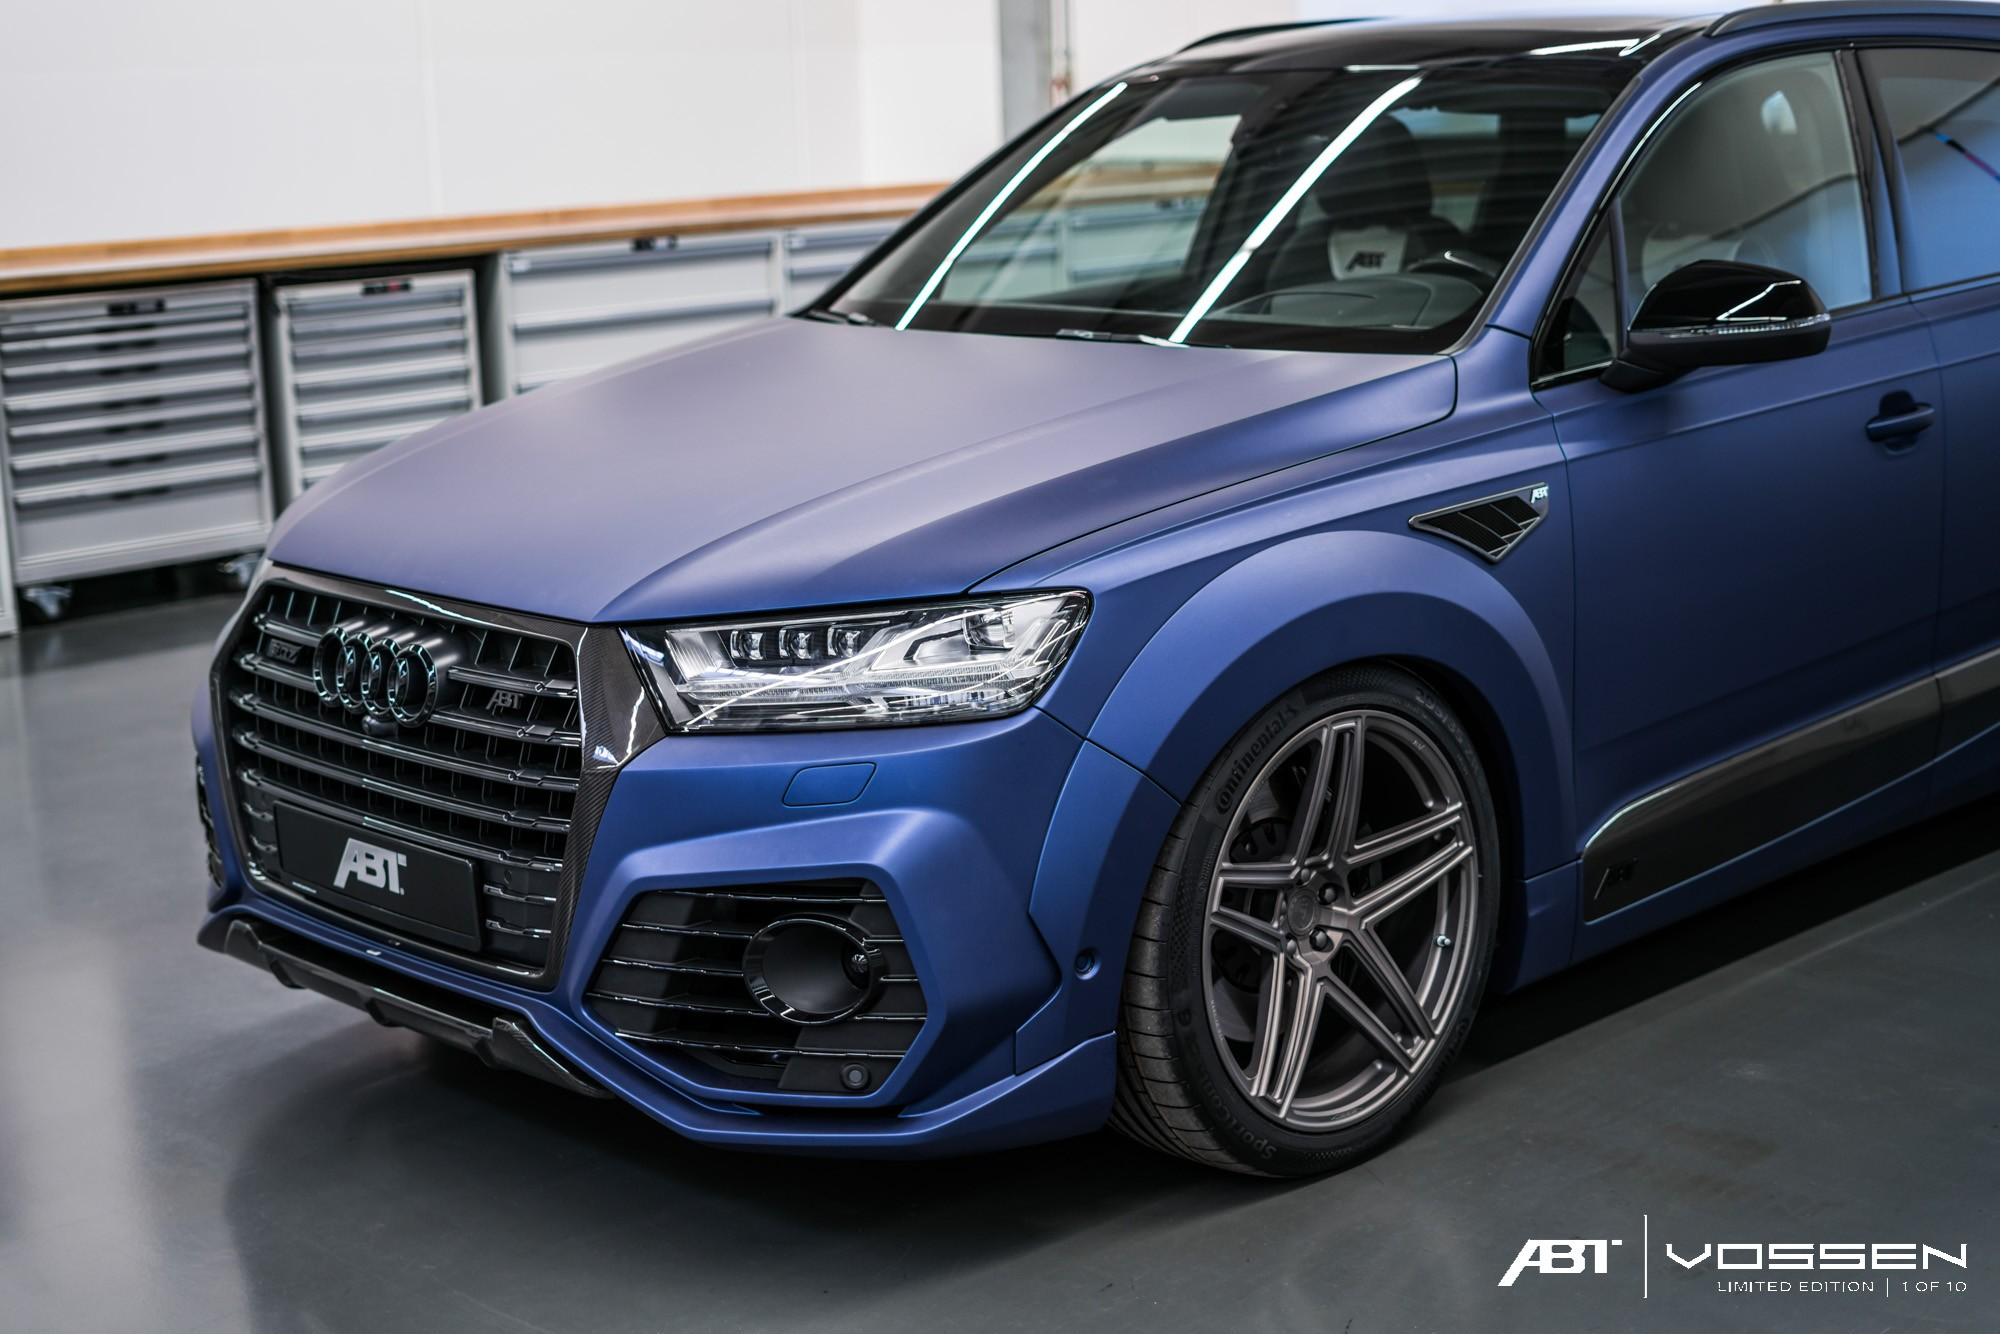 Audi Q7 and SQ7 Get ABT Widebody Kit and Vossen Forged Wheels - autoevolution